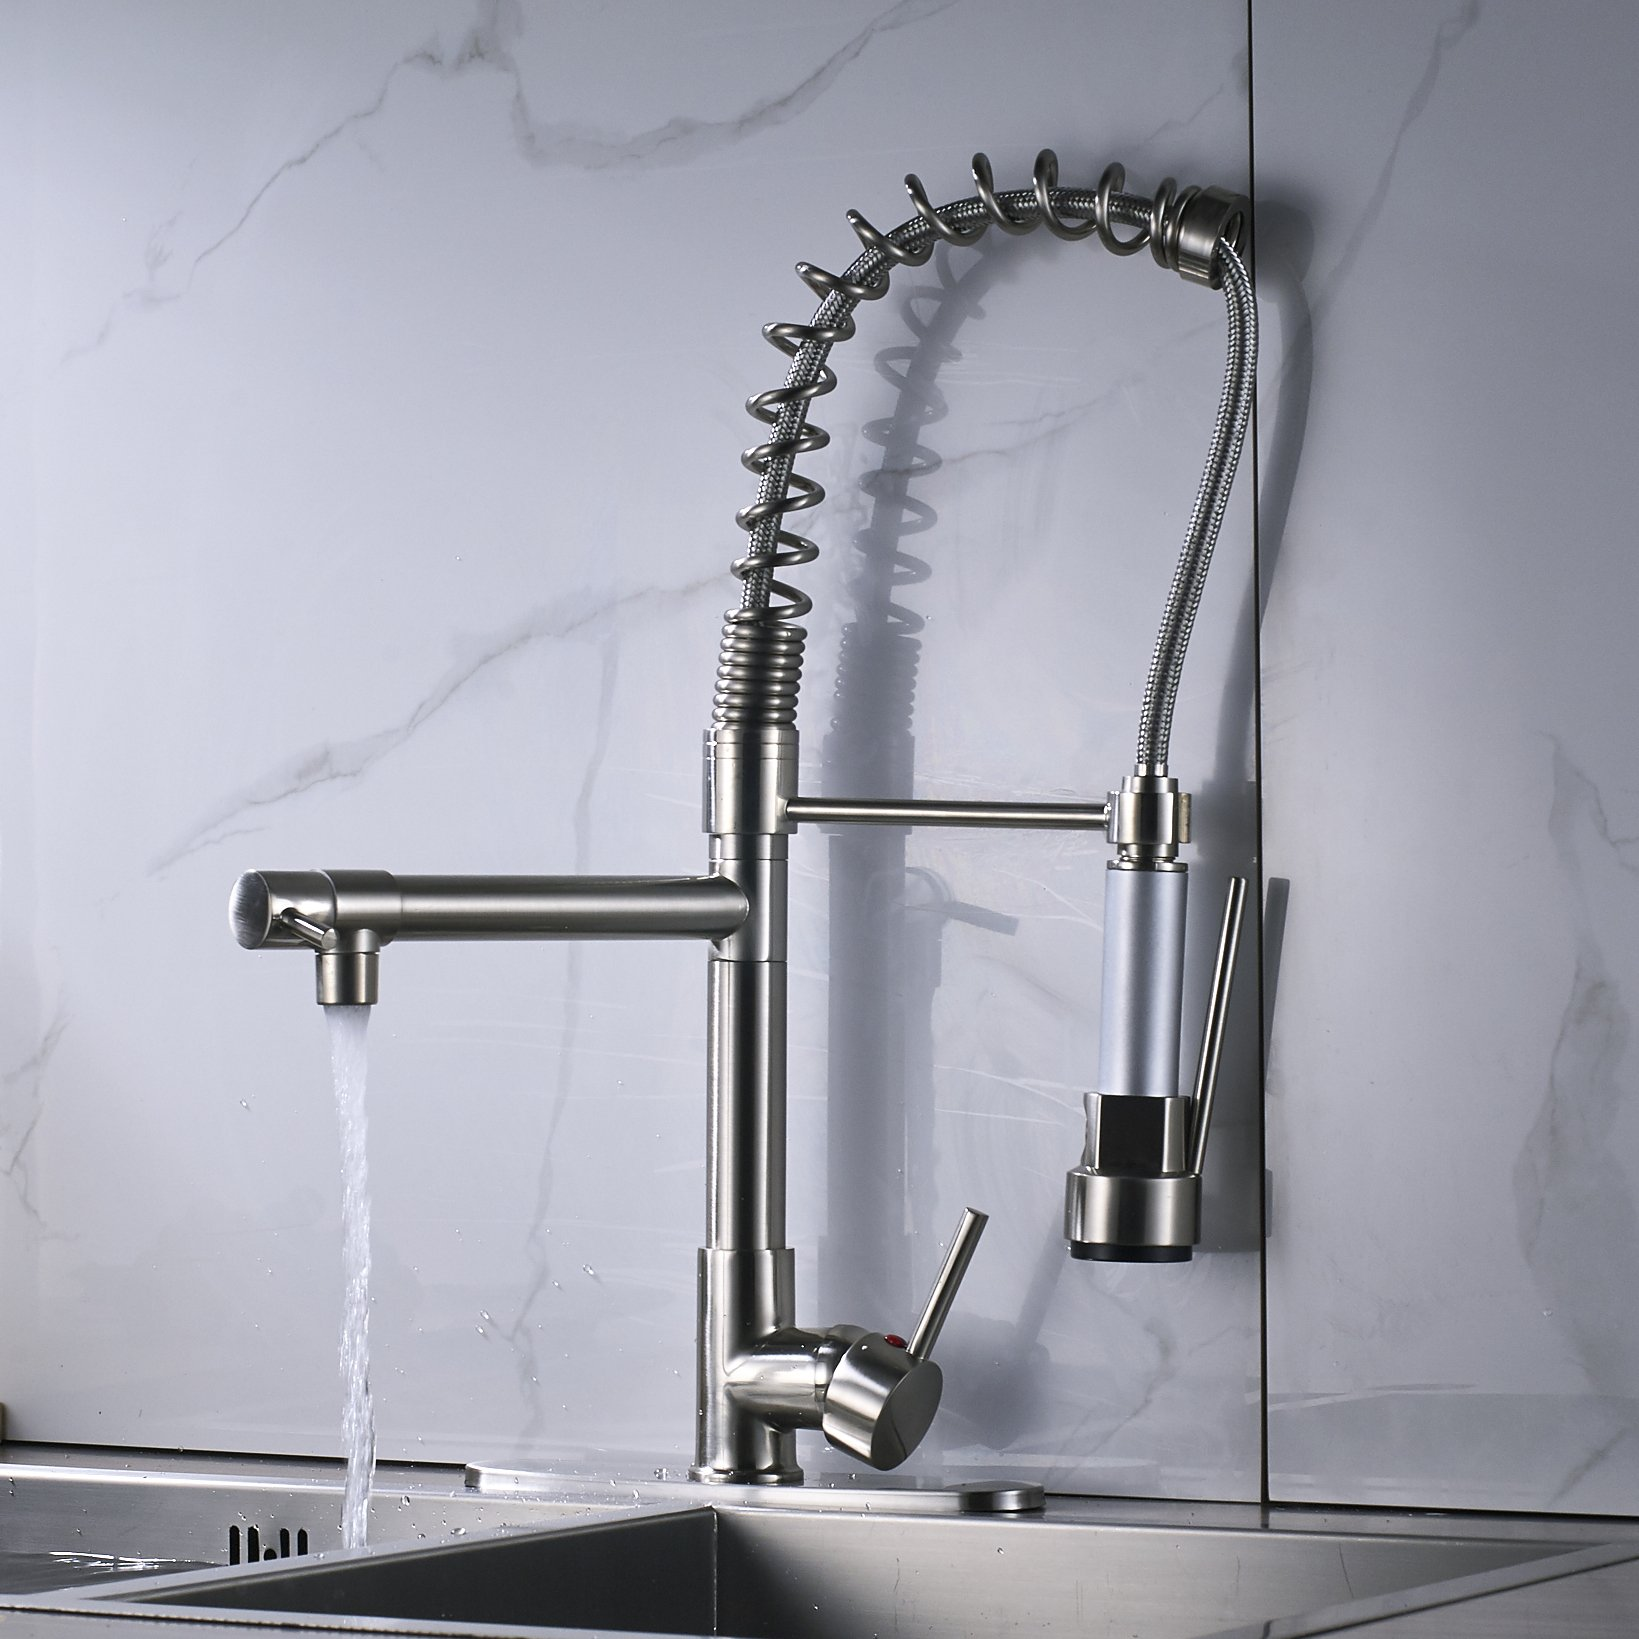 Rozin LED Light Sprayer Kitchen Sink Faucet with 8-inch Cover Plate Brushed Nickel by Rozin (Image #6)